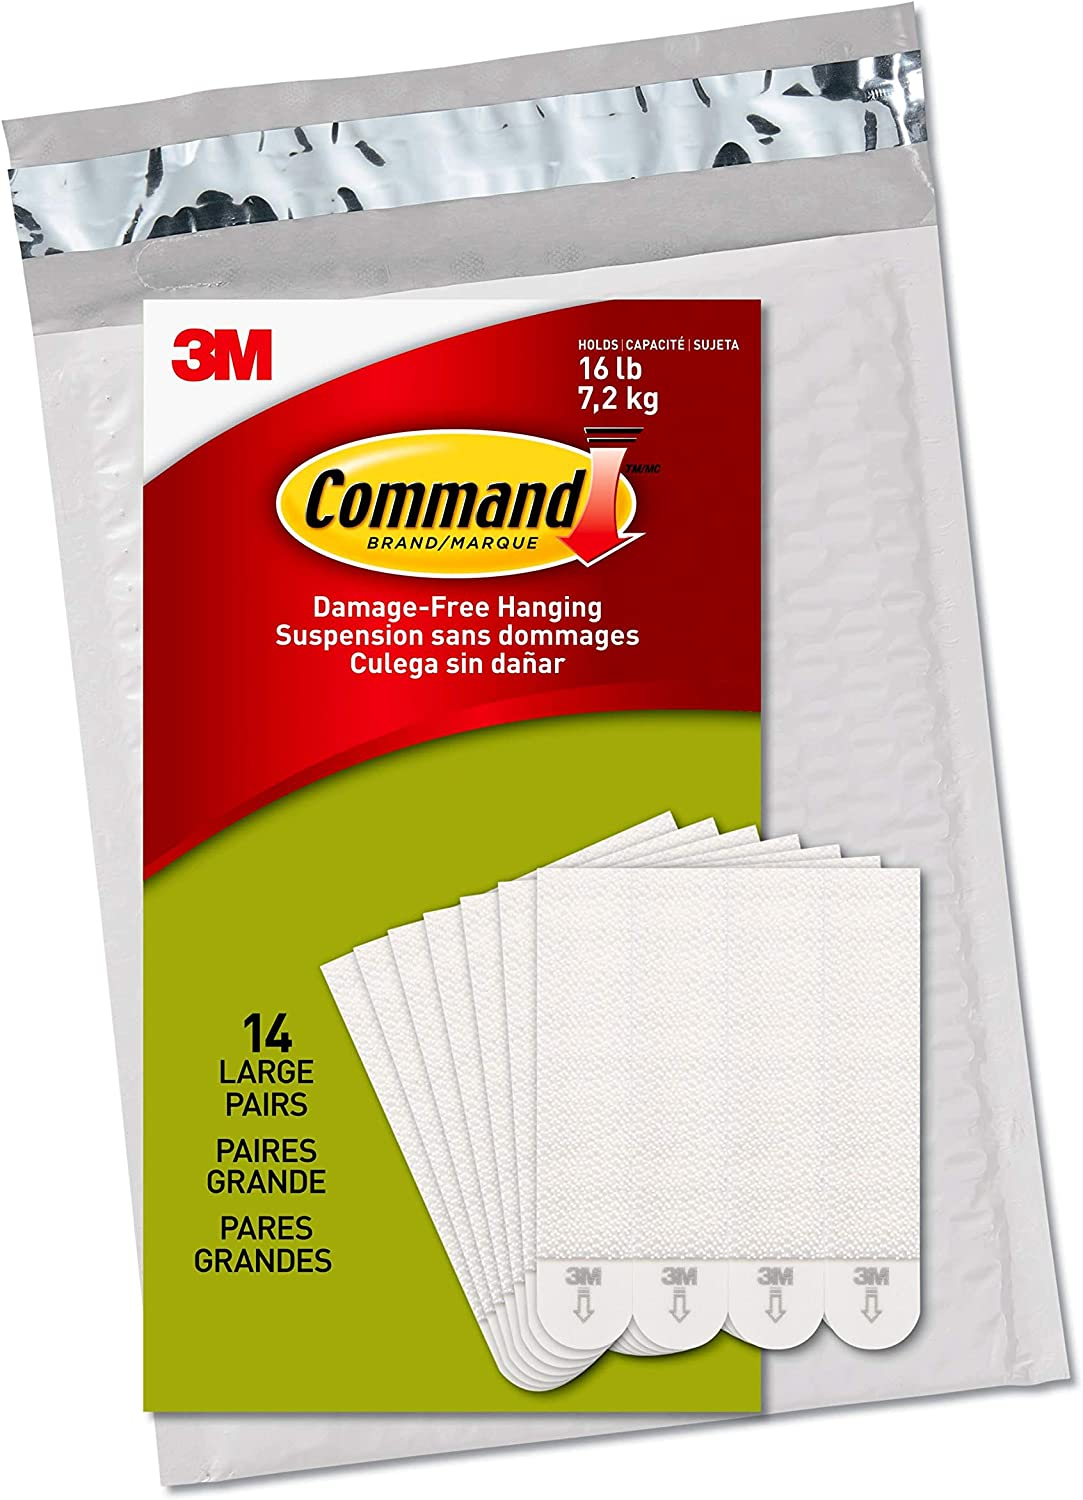 C ommand strips